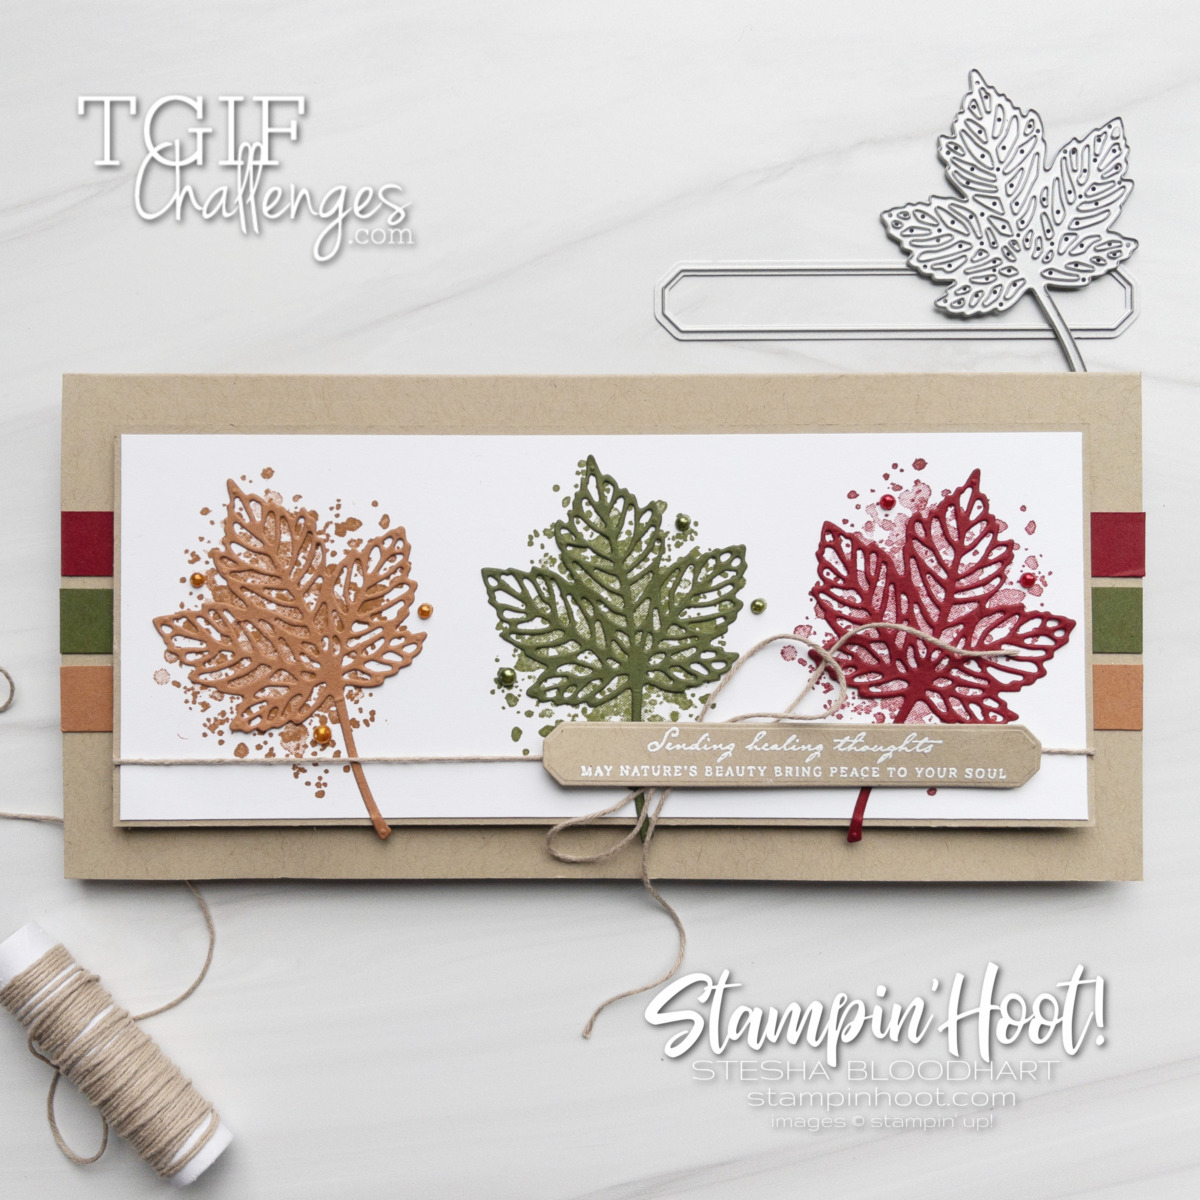 Create this slimline card using the Gorgeous Leaves Bundle by Stampin' Up! Card by Stesha Bloodhart, Stampin' Hoot!